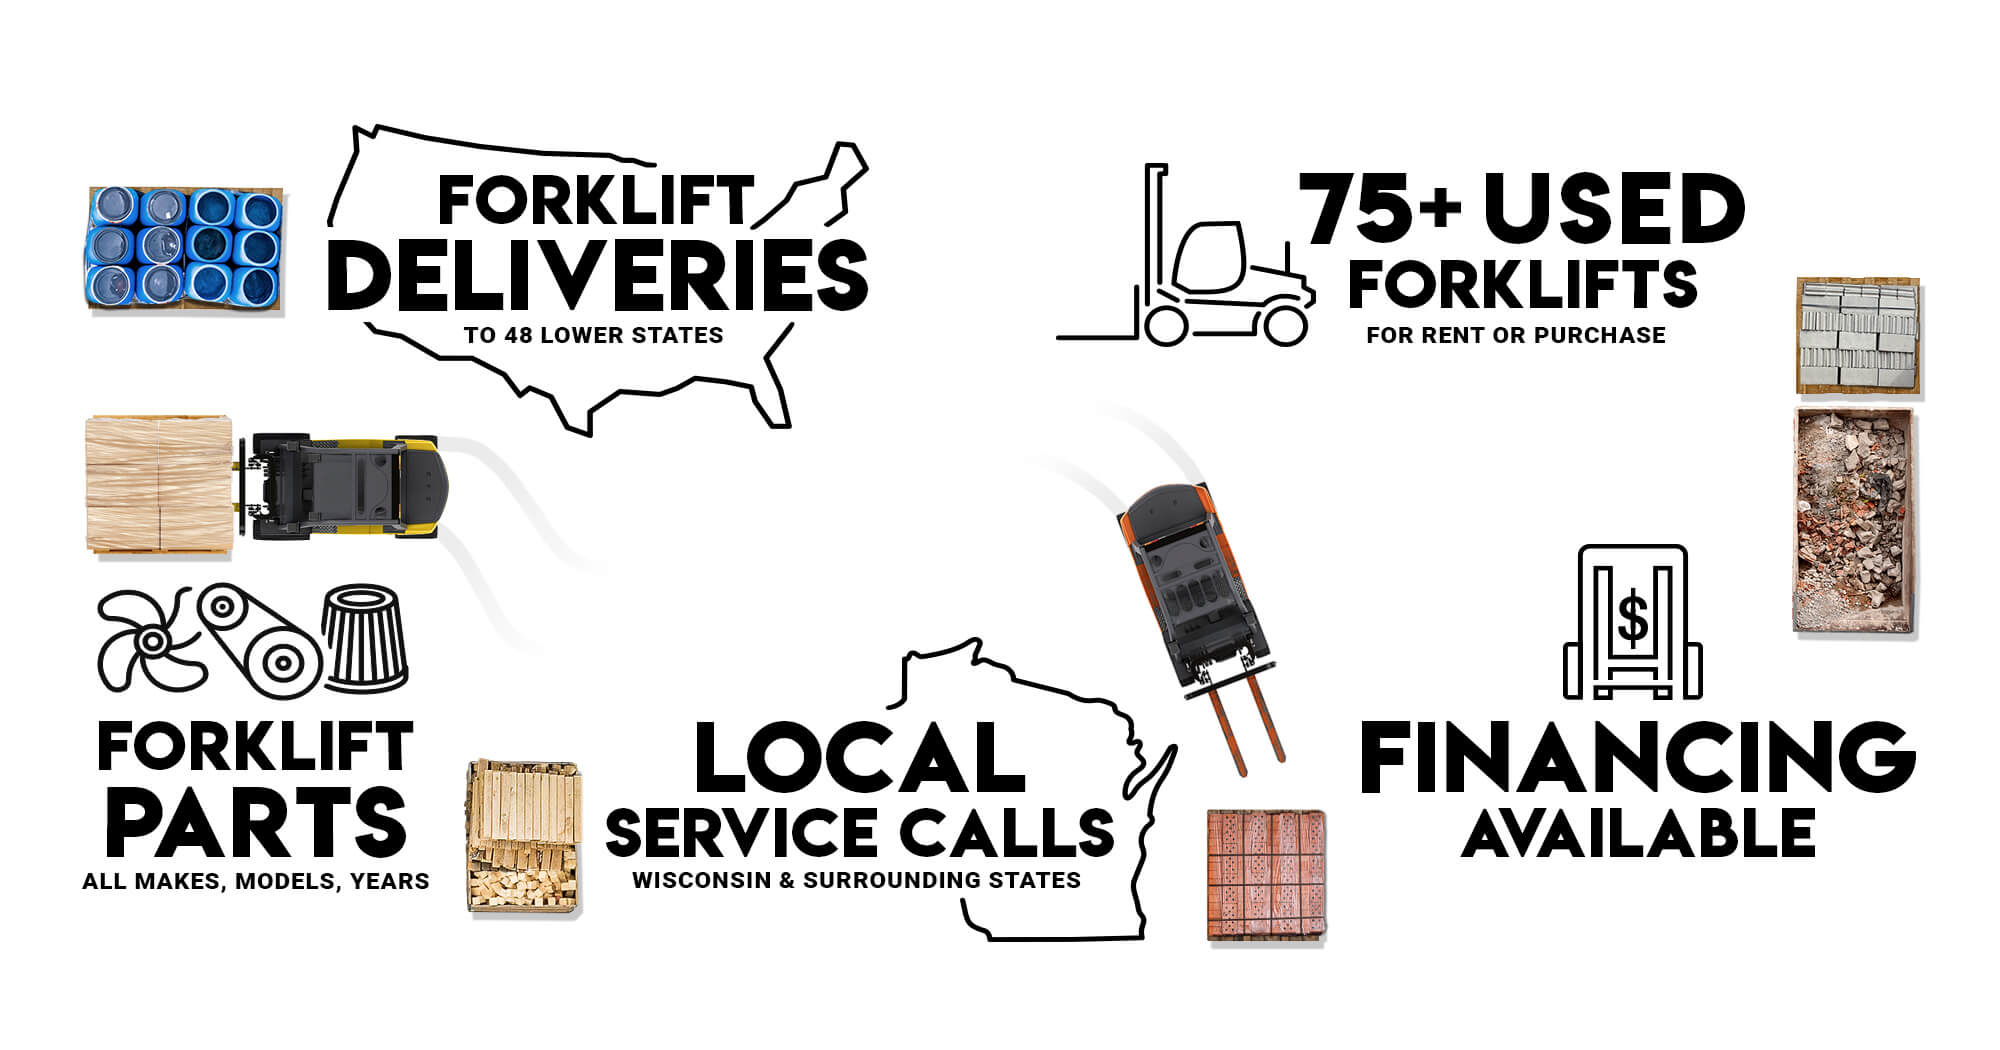 Forklift Trader Buys, Sells & Delivers Forklifts Nationwide